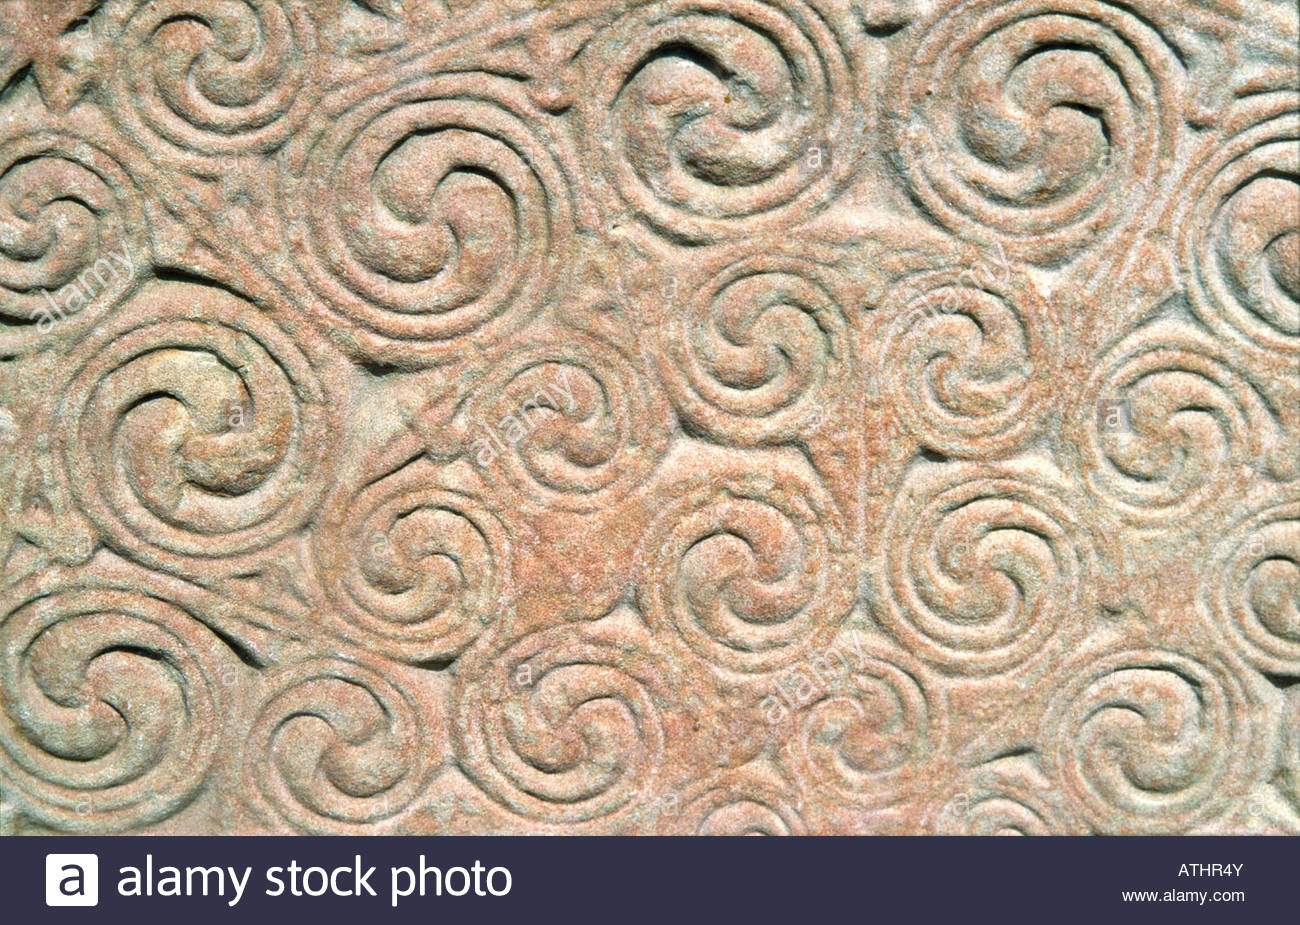 Celtic engraving stock photos